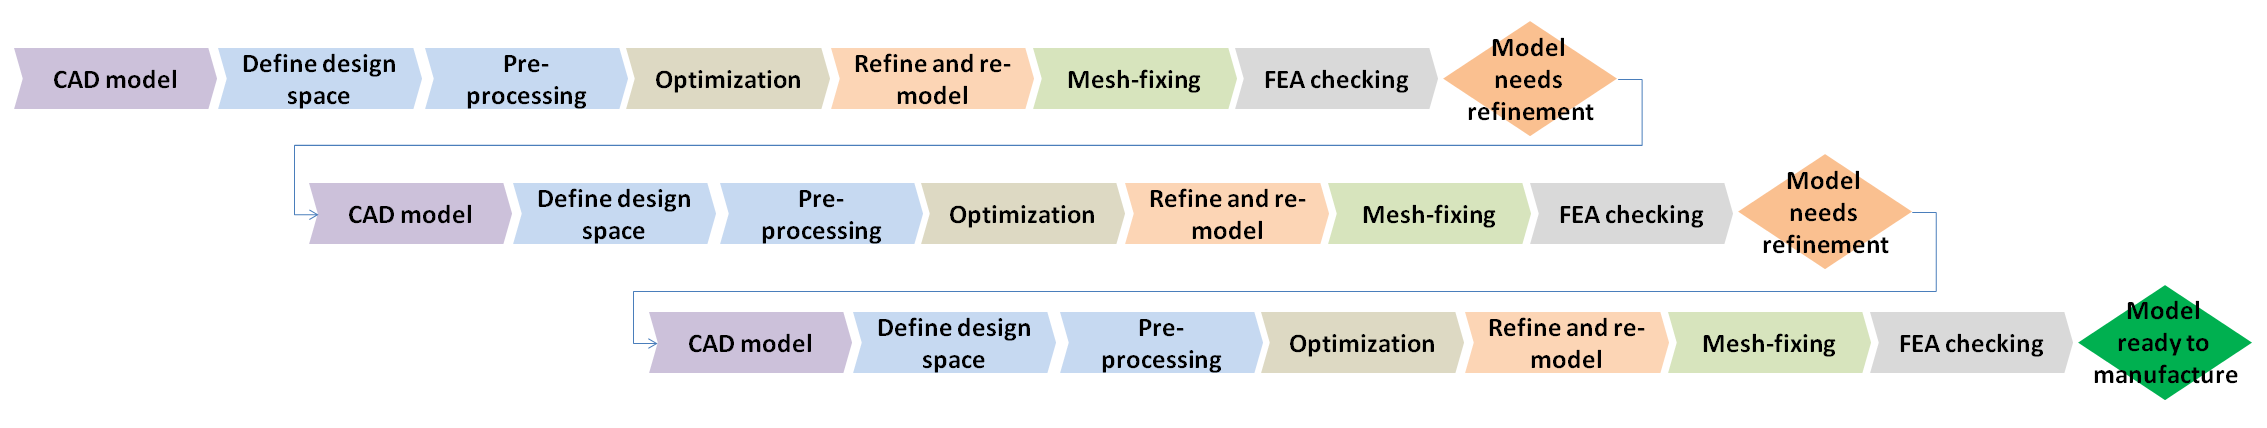 Typical existing concept design workflow:   Multiple tools are needed and the workflow involves meshes that are hard to interpret and cumbersome to work with. Multiple iterations of the process are often needed to generate a model suitable for manufacture.